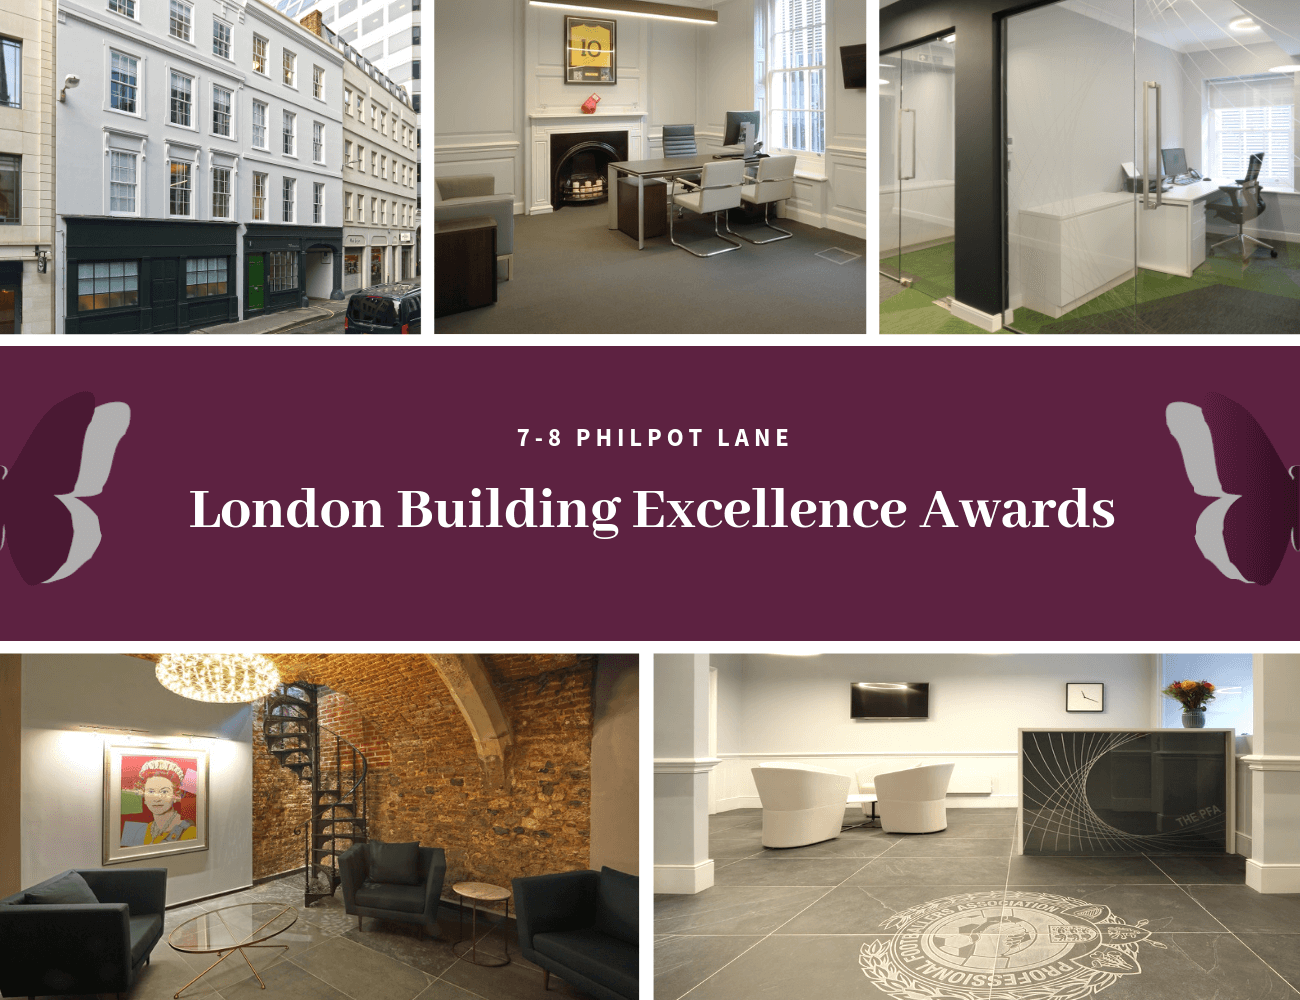 LONDON BUSINESS EXCELLENCE AWARDS